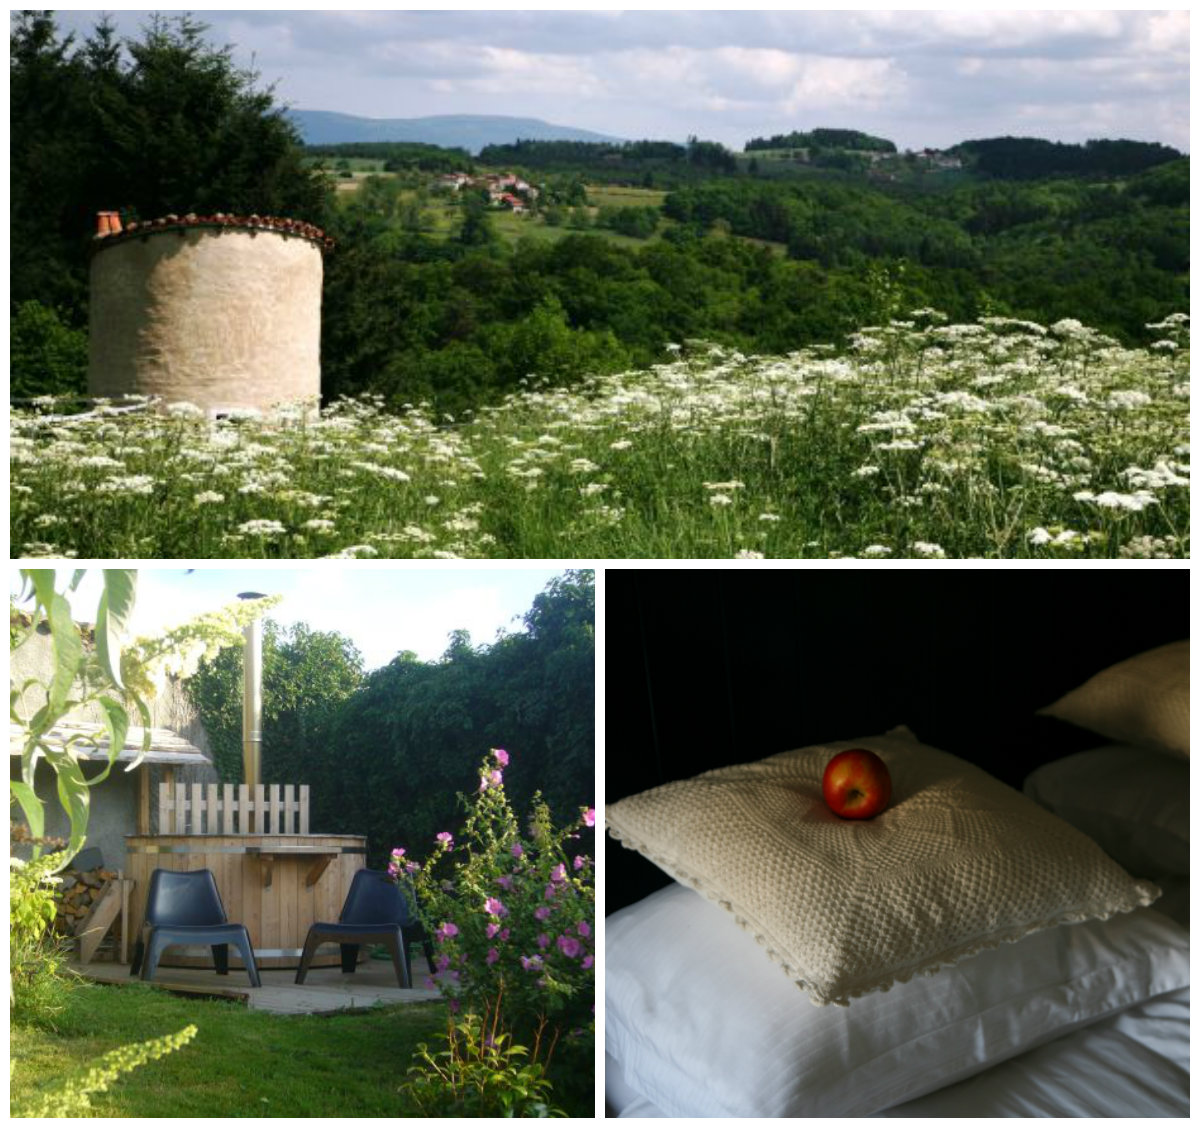 B&B in de Auvergne Paresse en douce